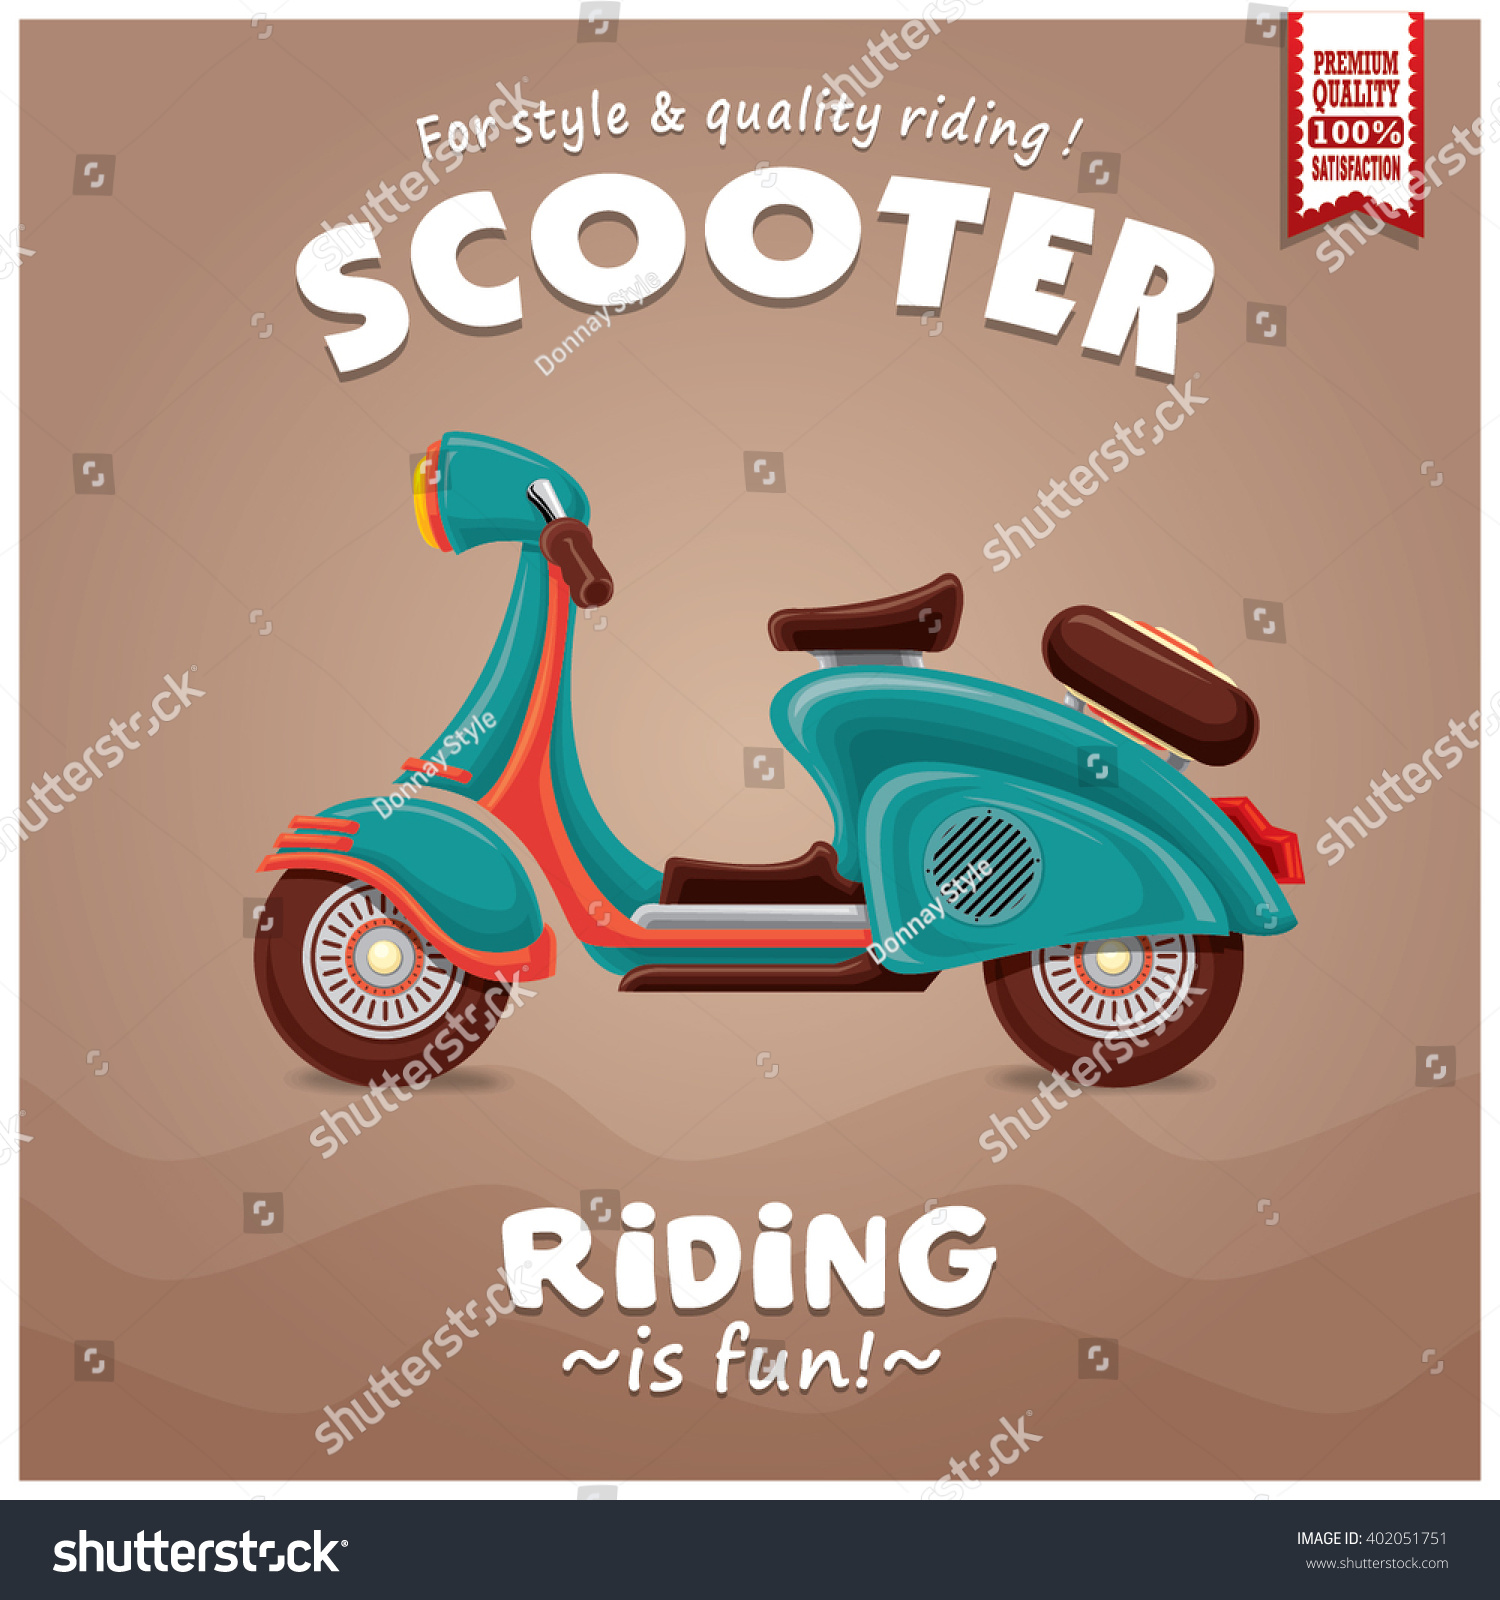 Vintage Scooter Poster Design Stock Vector Royalty Free 402051751